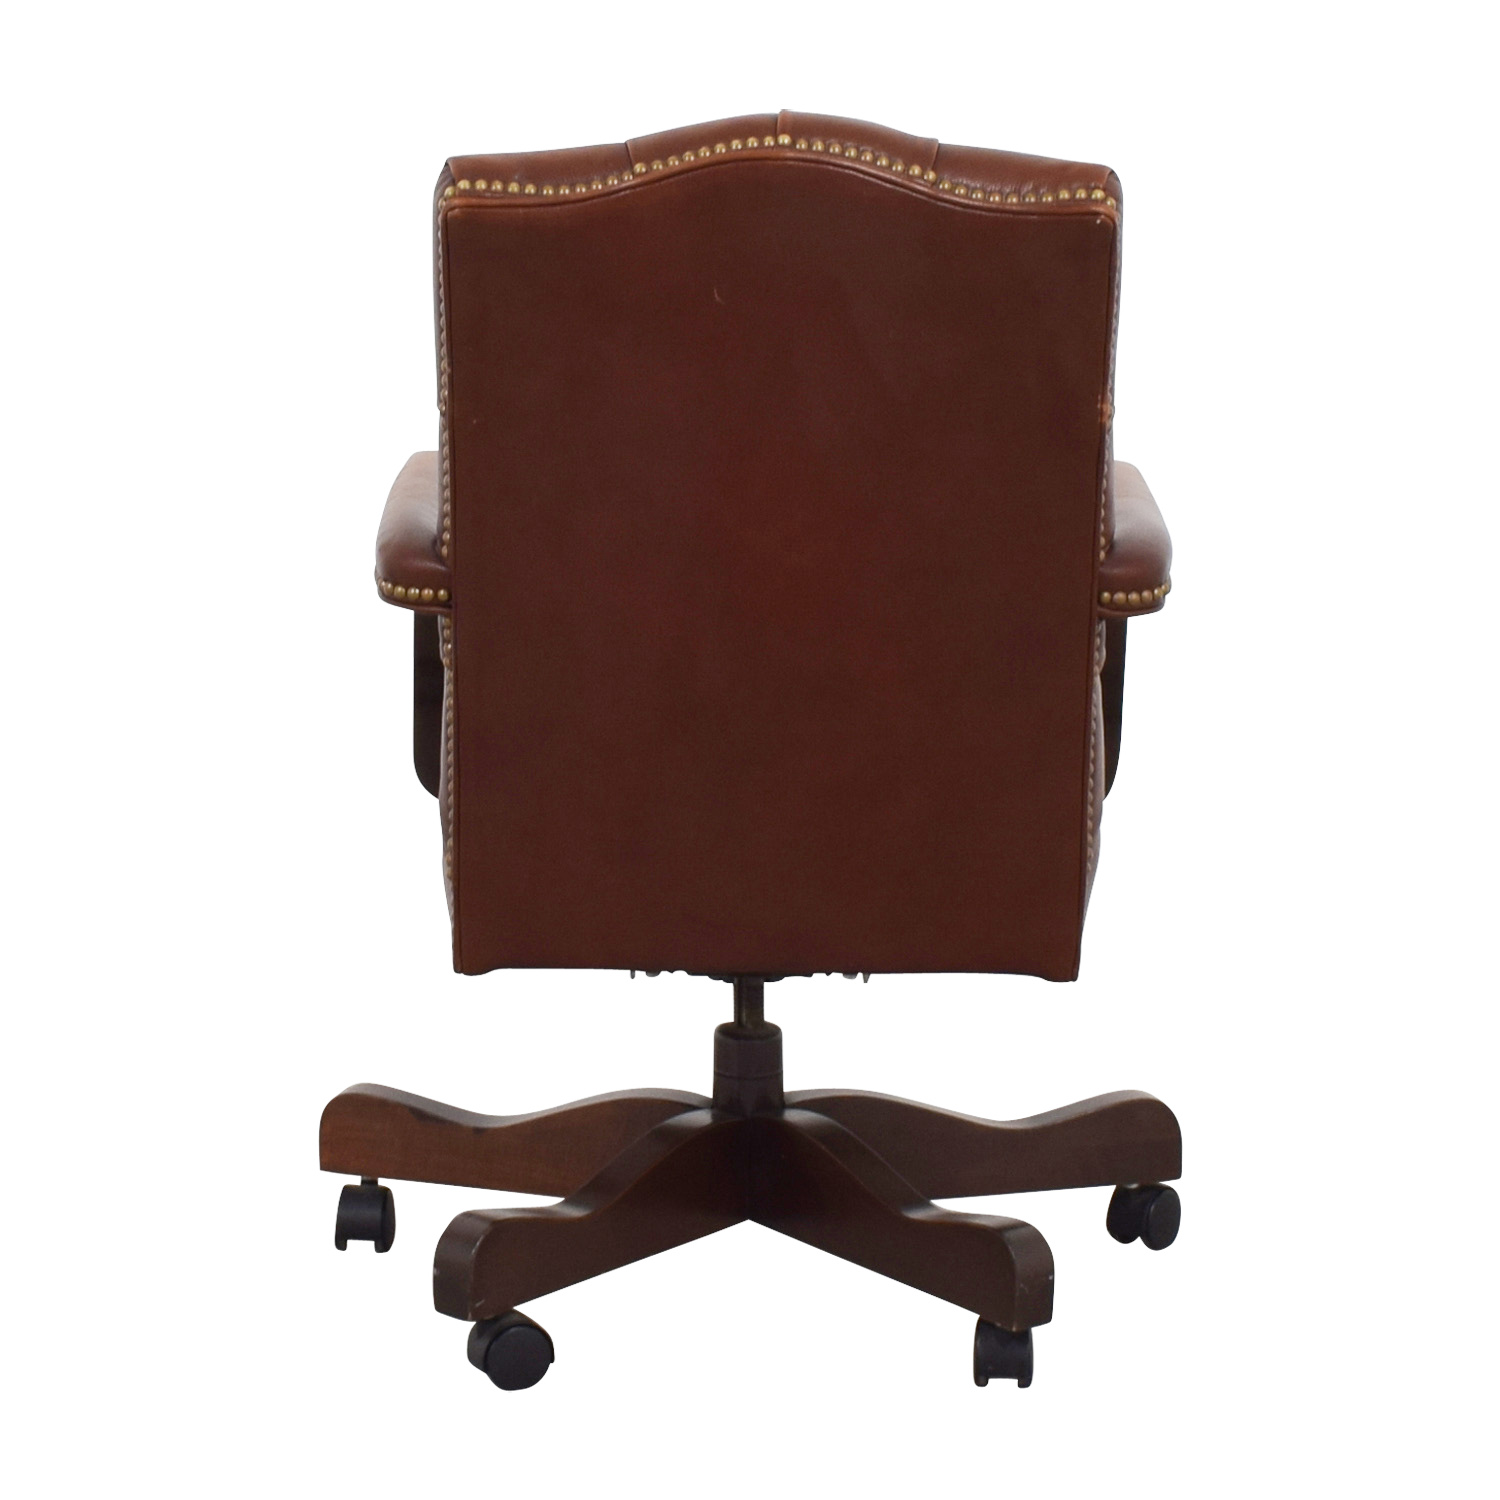 Remarkable 79 Off Ethan Allen Ethan Allen Brown Leather Desk Chair Chairs Pabps2019 Chair Design Images Pabps2019Com